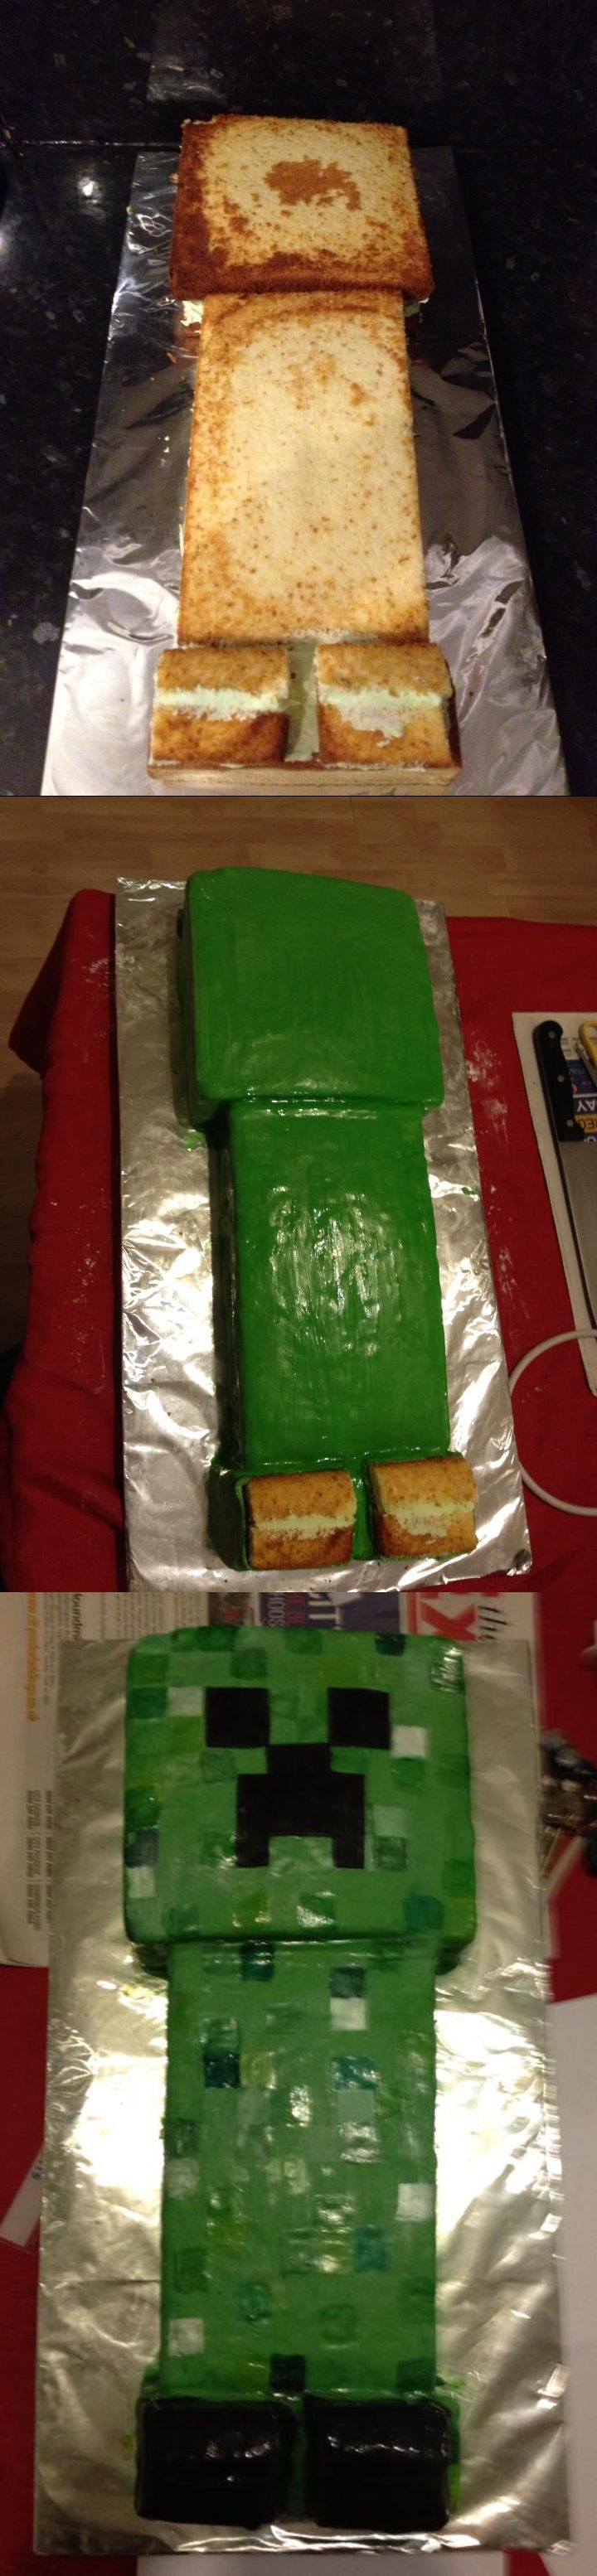 Minecraft Creeper Cake...my daughter may be only girl who wants creeper party :-)